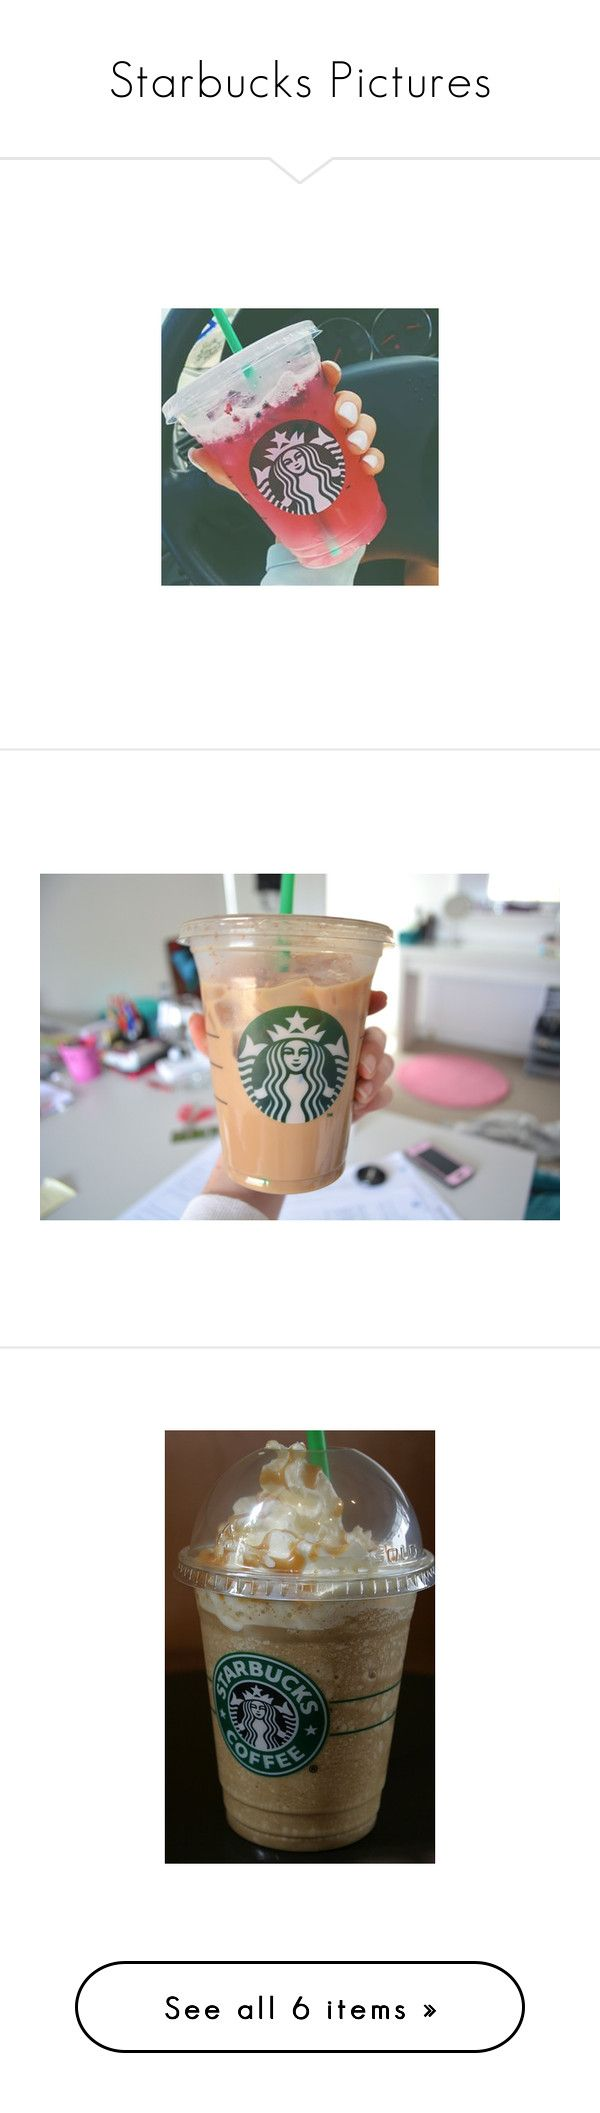 """Starbucks Pictures"" by liliana-a ❤ liked on Polyvore featuring icon pictures, tumblr, icons, pictures, icon pics, square pictures, backgrounds, food and photos"